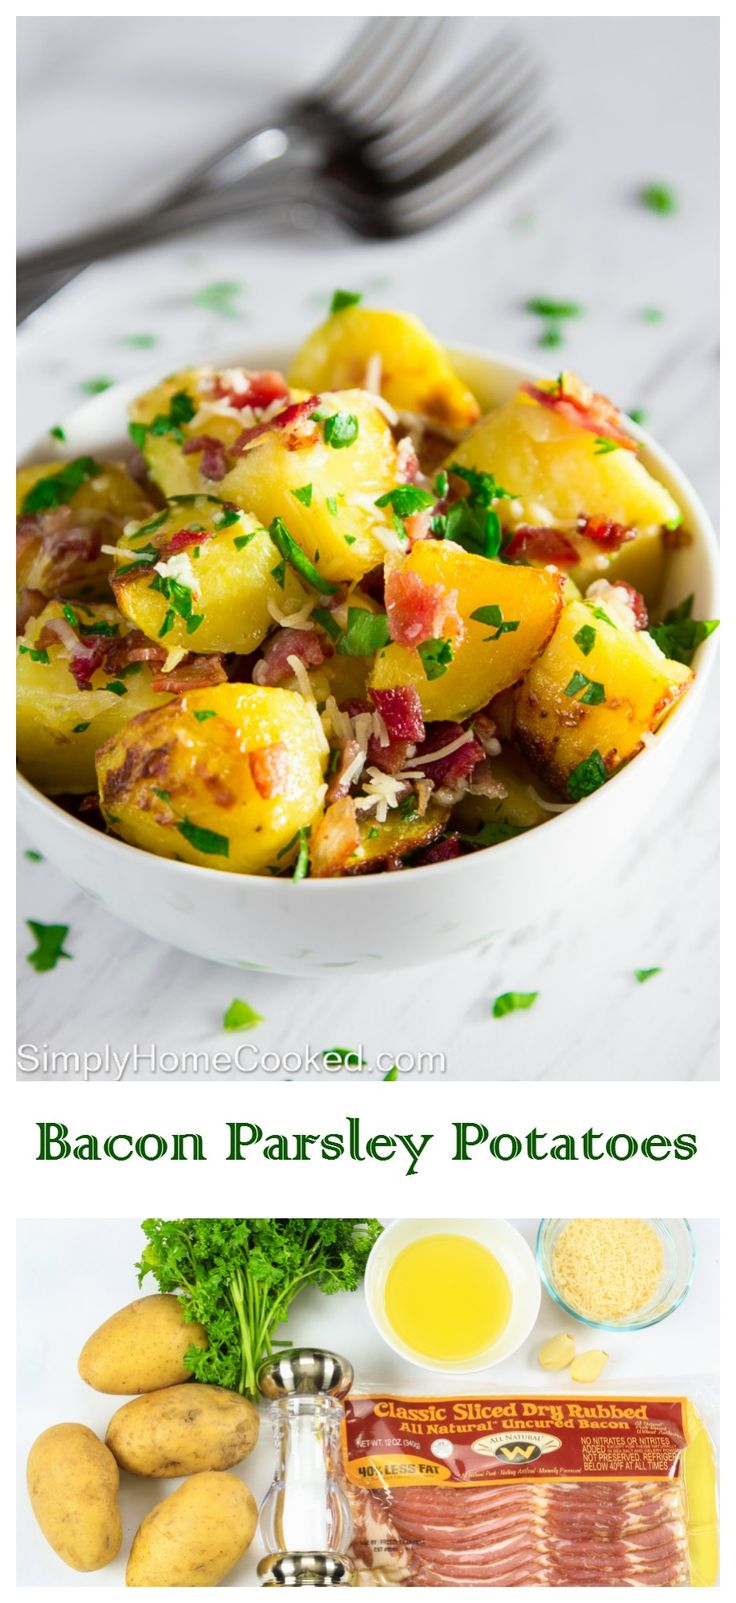 Yukon gold potatoes baked with bacon, Parmesan cheese, and tossed with ...